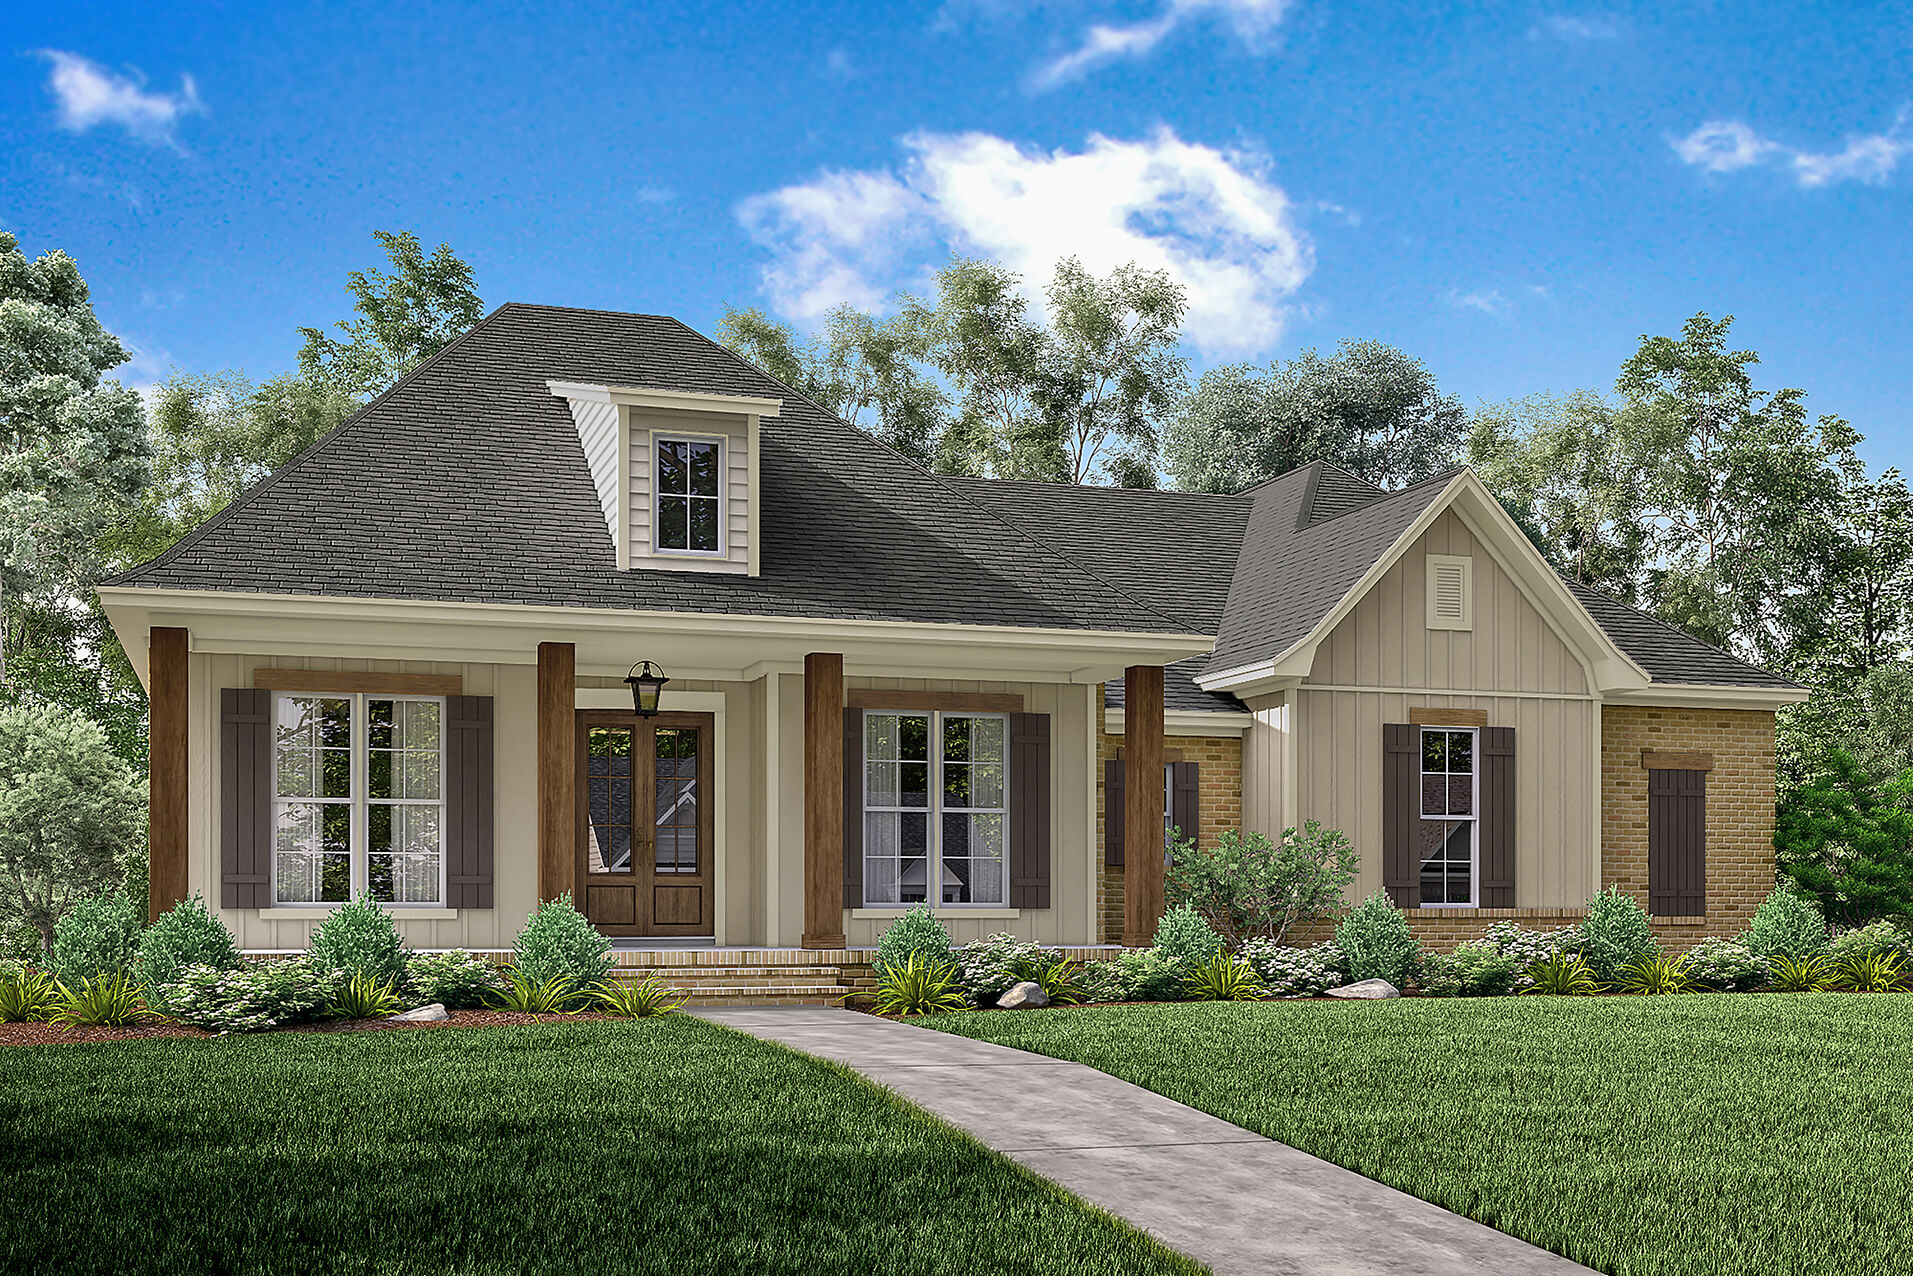 3 bedrm 1900 sq ft acadian house plan 142 1163 for House plan with photos